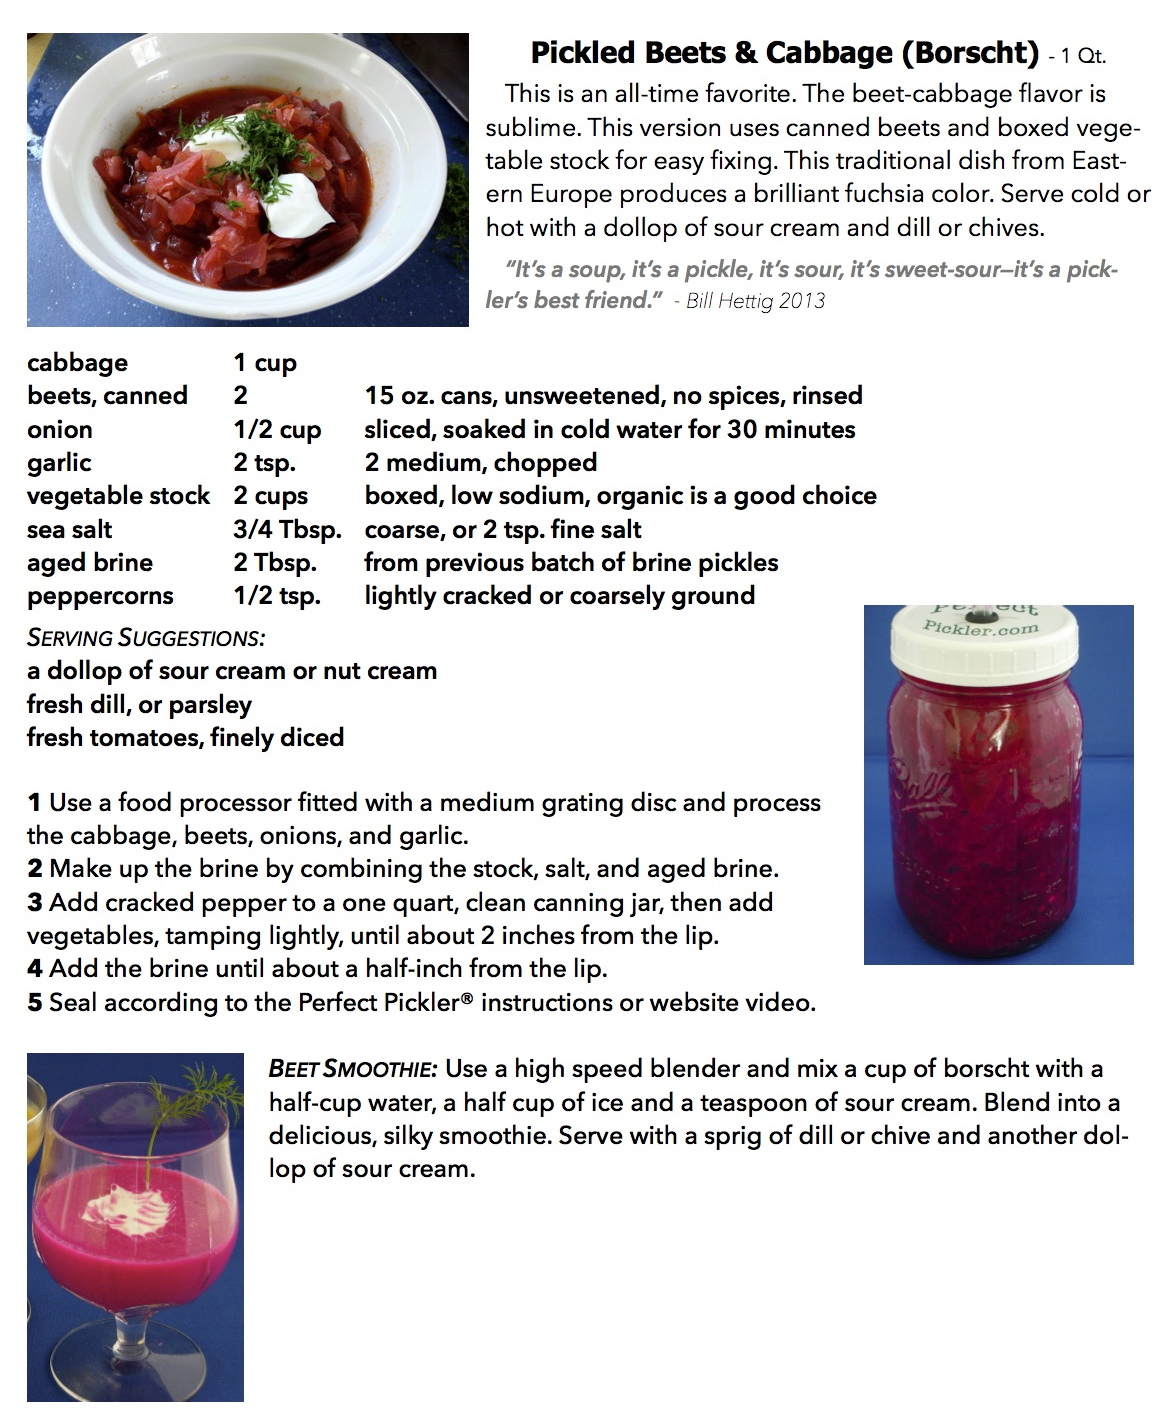 recipe: cold borscht recipe canned beets [31]